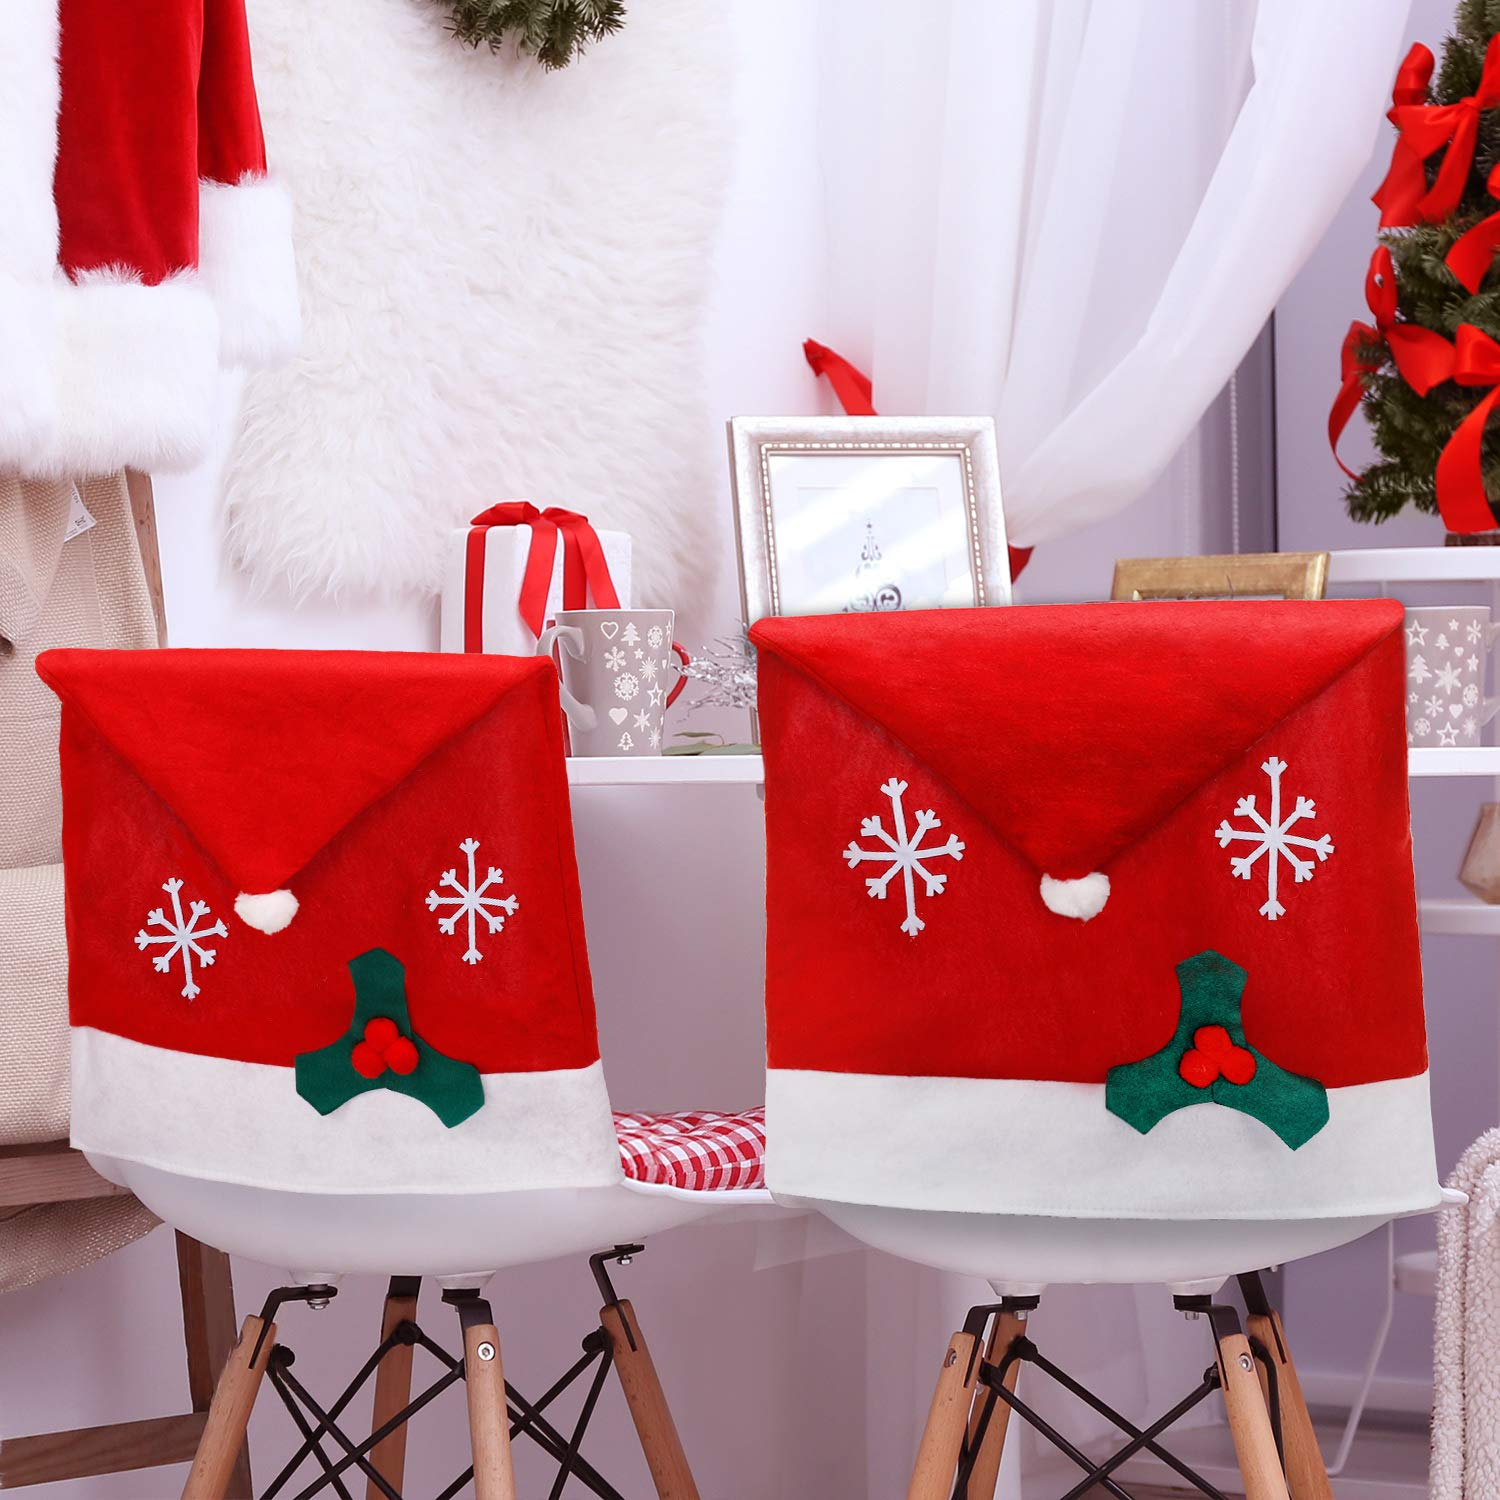 Awe Inspiring Tatuo 4 Pieces Christmas Chair Covers Decor Santa Claus Red Hat Snowflake Chair Xmas Cap Kitchen Dining Chair Slipcovers Sets For Christmas Holiday Unemploymentrelief Wooden Chair Designs For Living Room Unemploymentrelieforg